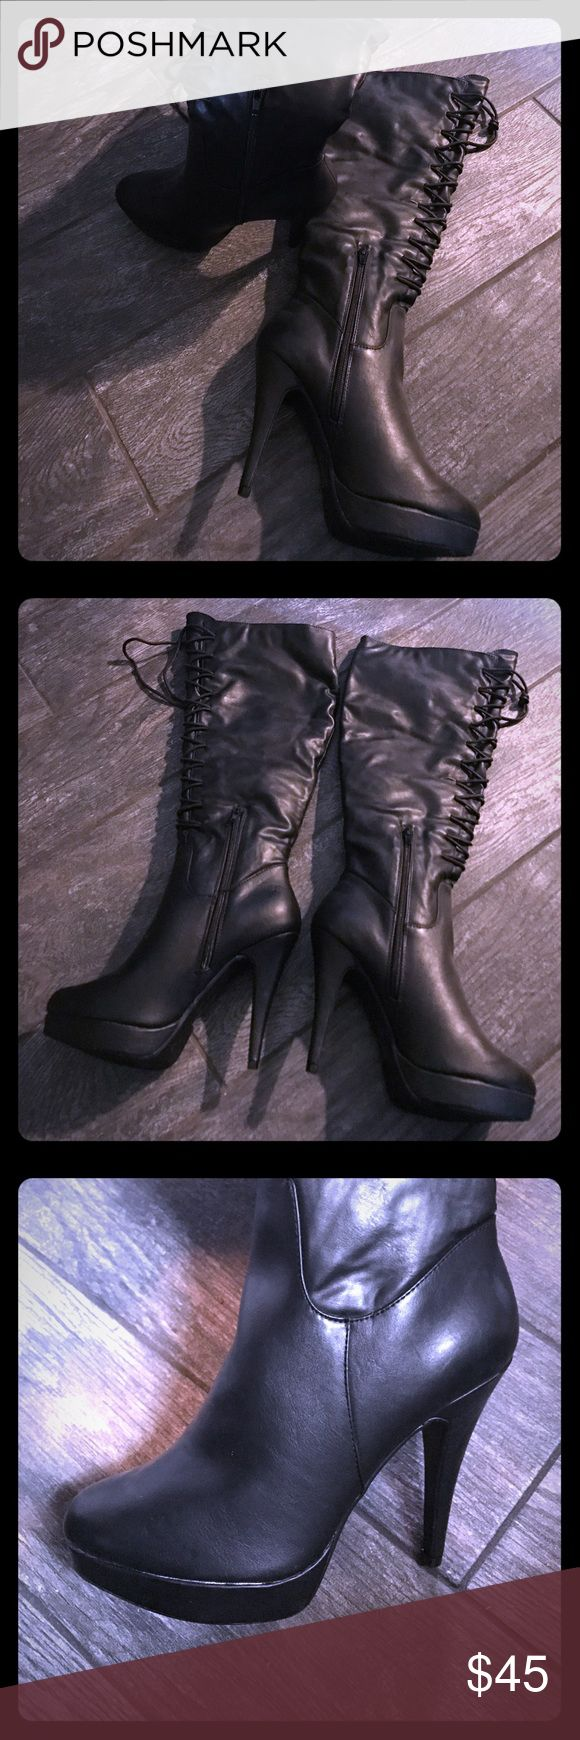 NWOT NEVER WORN Shoe Dazzle lace-up boots Size 8.5 SEXY lace- up boot heels from Shoe Dazzle. Has a platform lift Size 8.5 Shoe Dazzle Shoes Heeled Boots